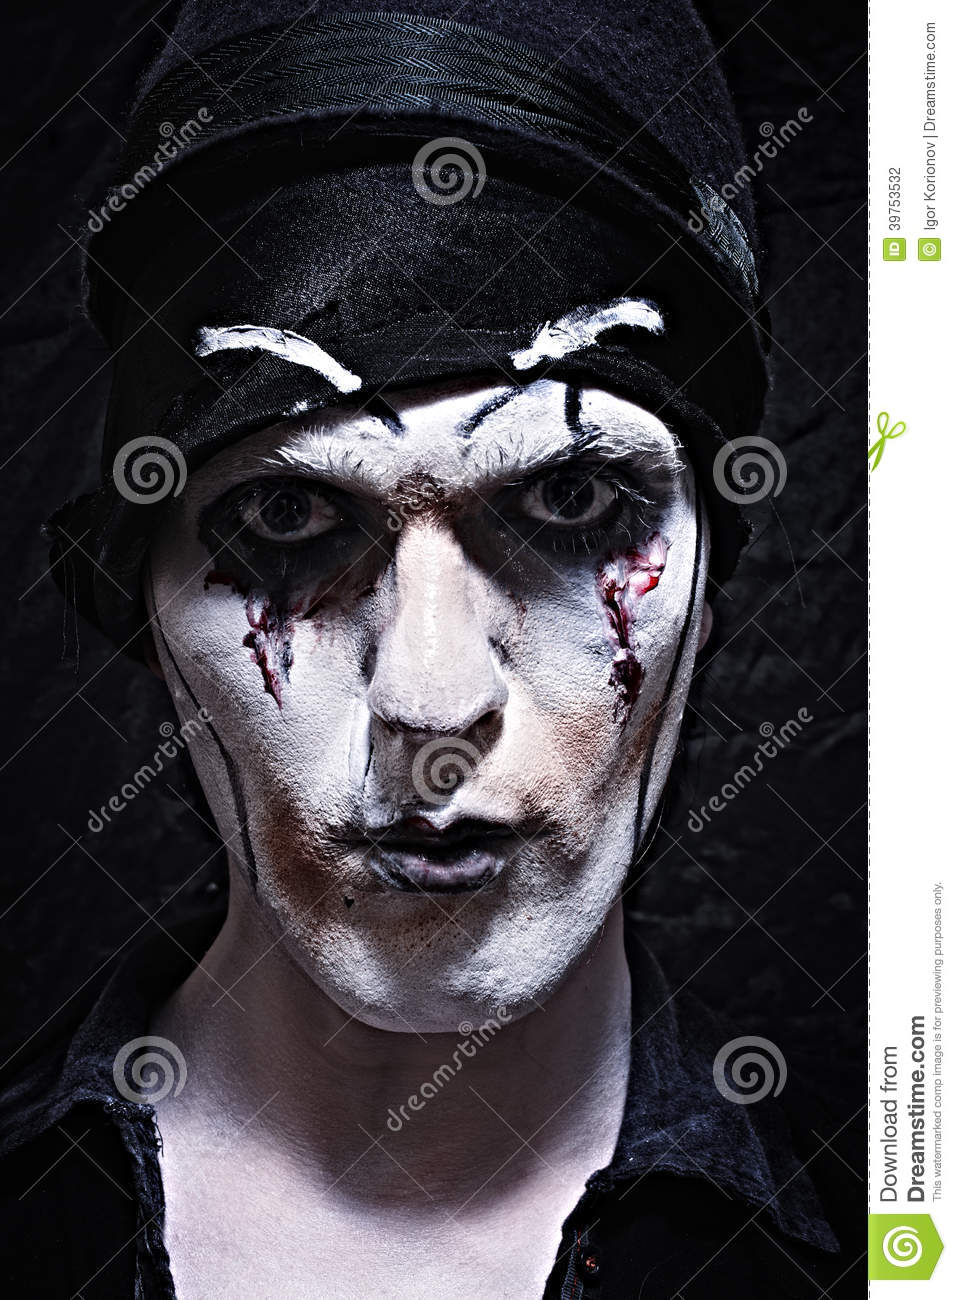 2b812e2bab6 Portrait Of A Theatrical Actor With Dark Makeup Stock Photo - Image ...